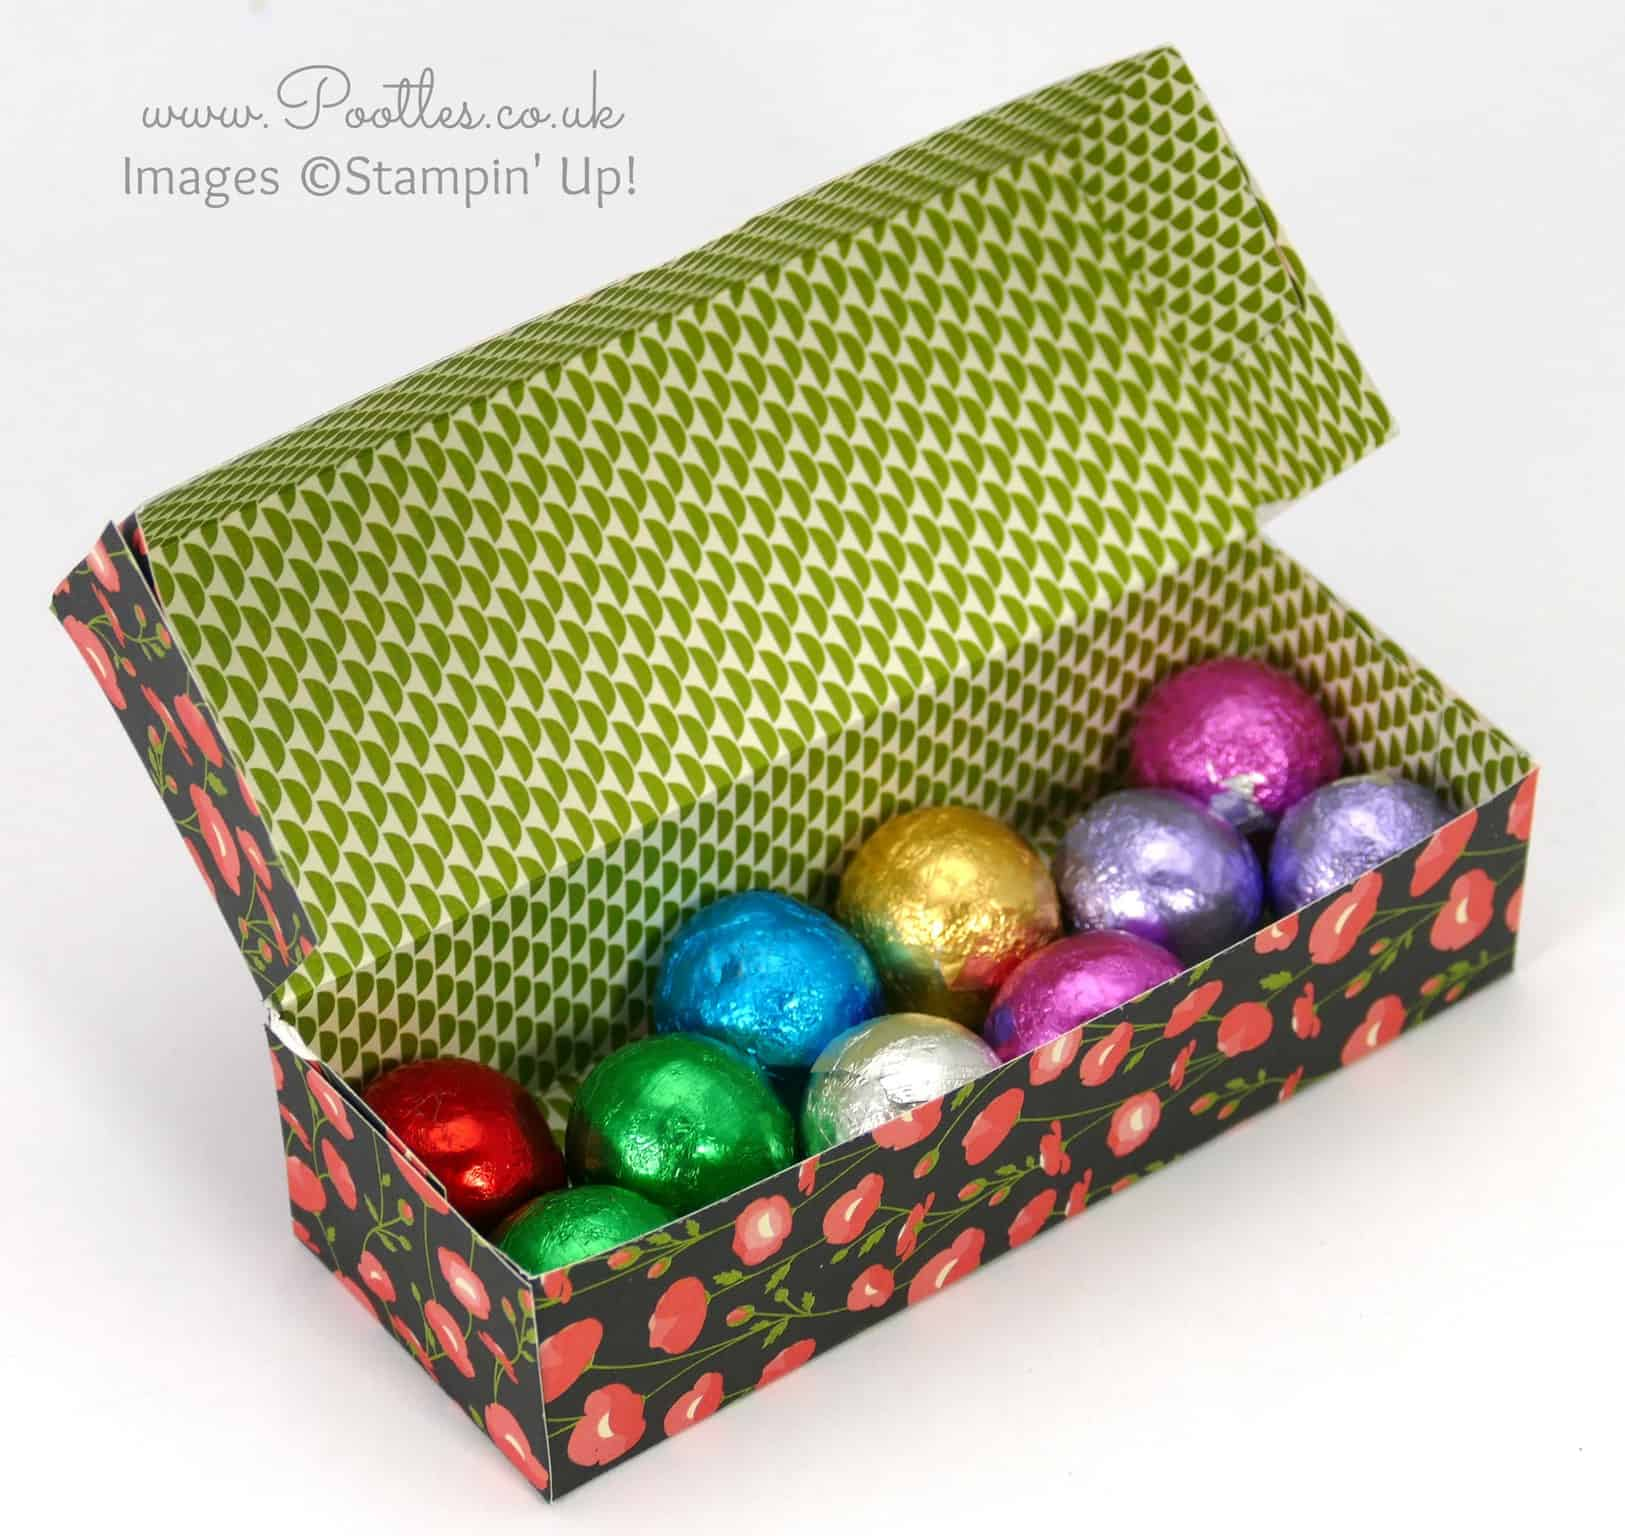 Pretty Chocolate Box Tutorial using Stampin' Up! DSP